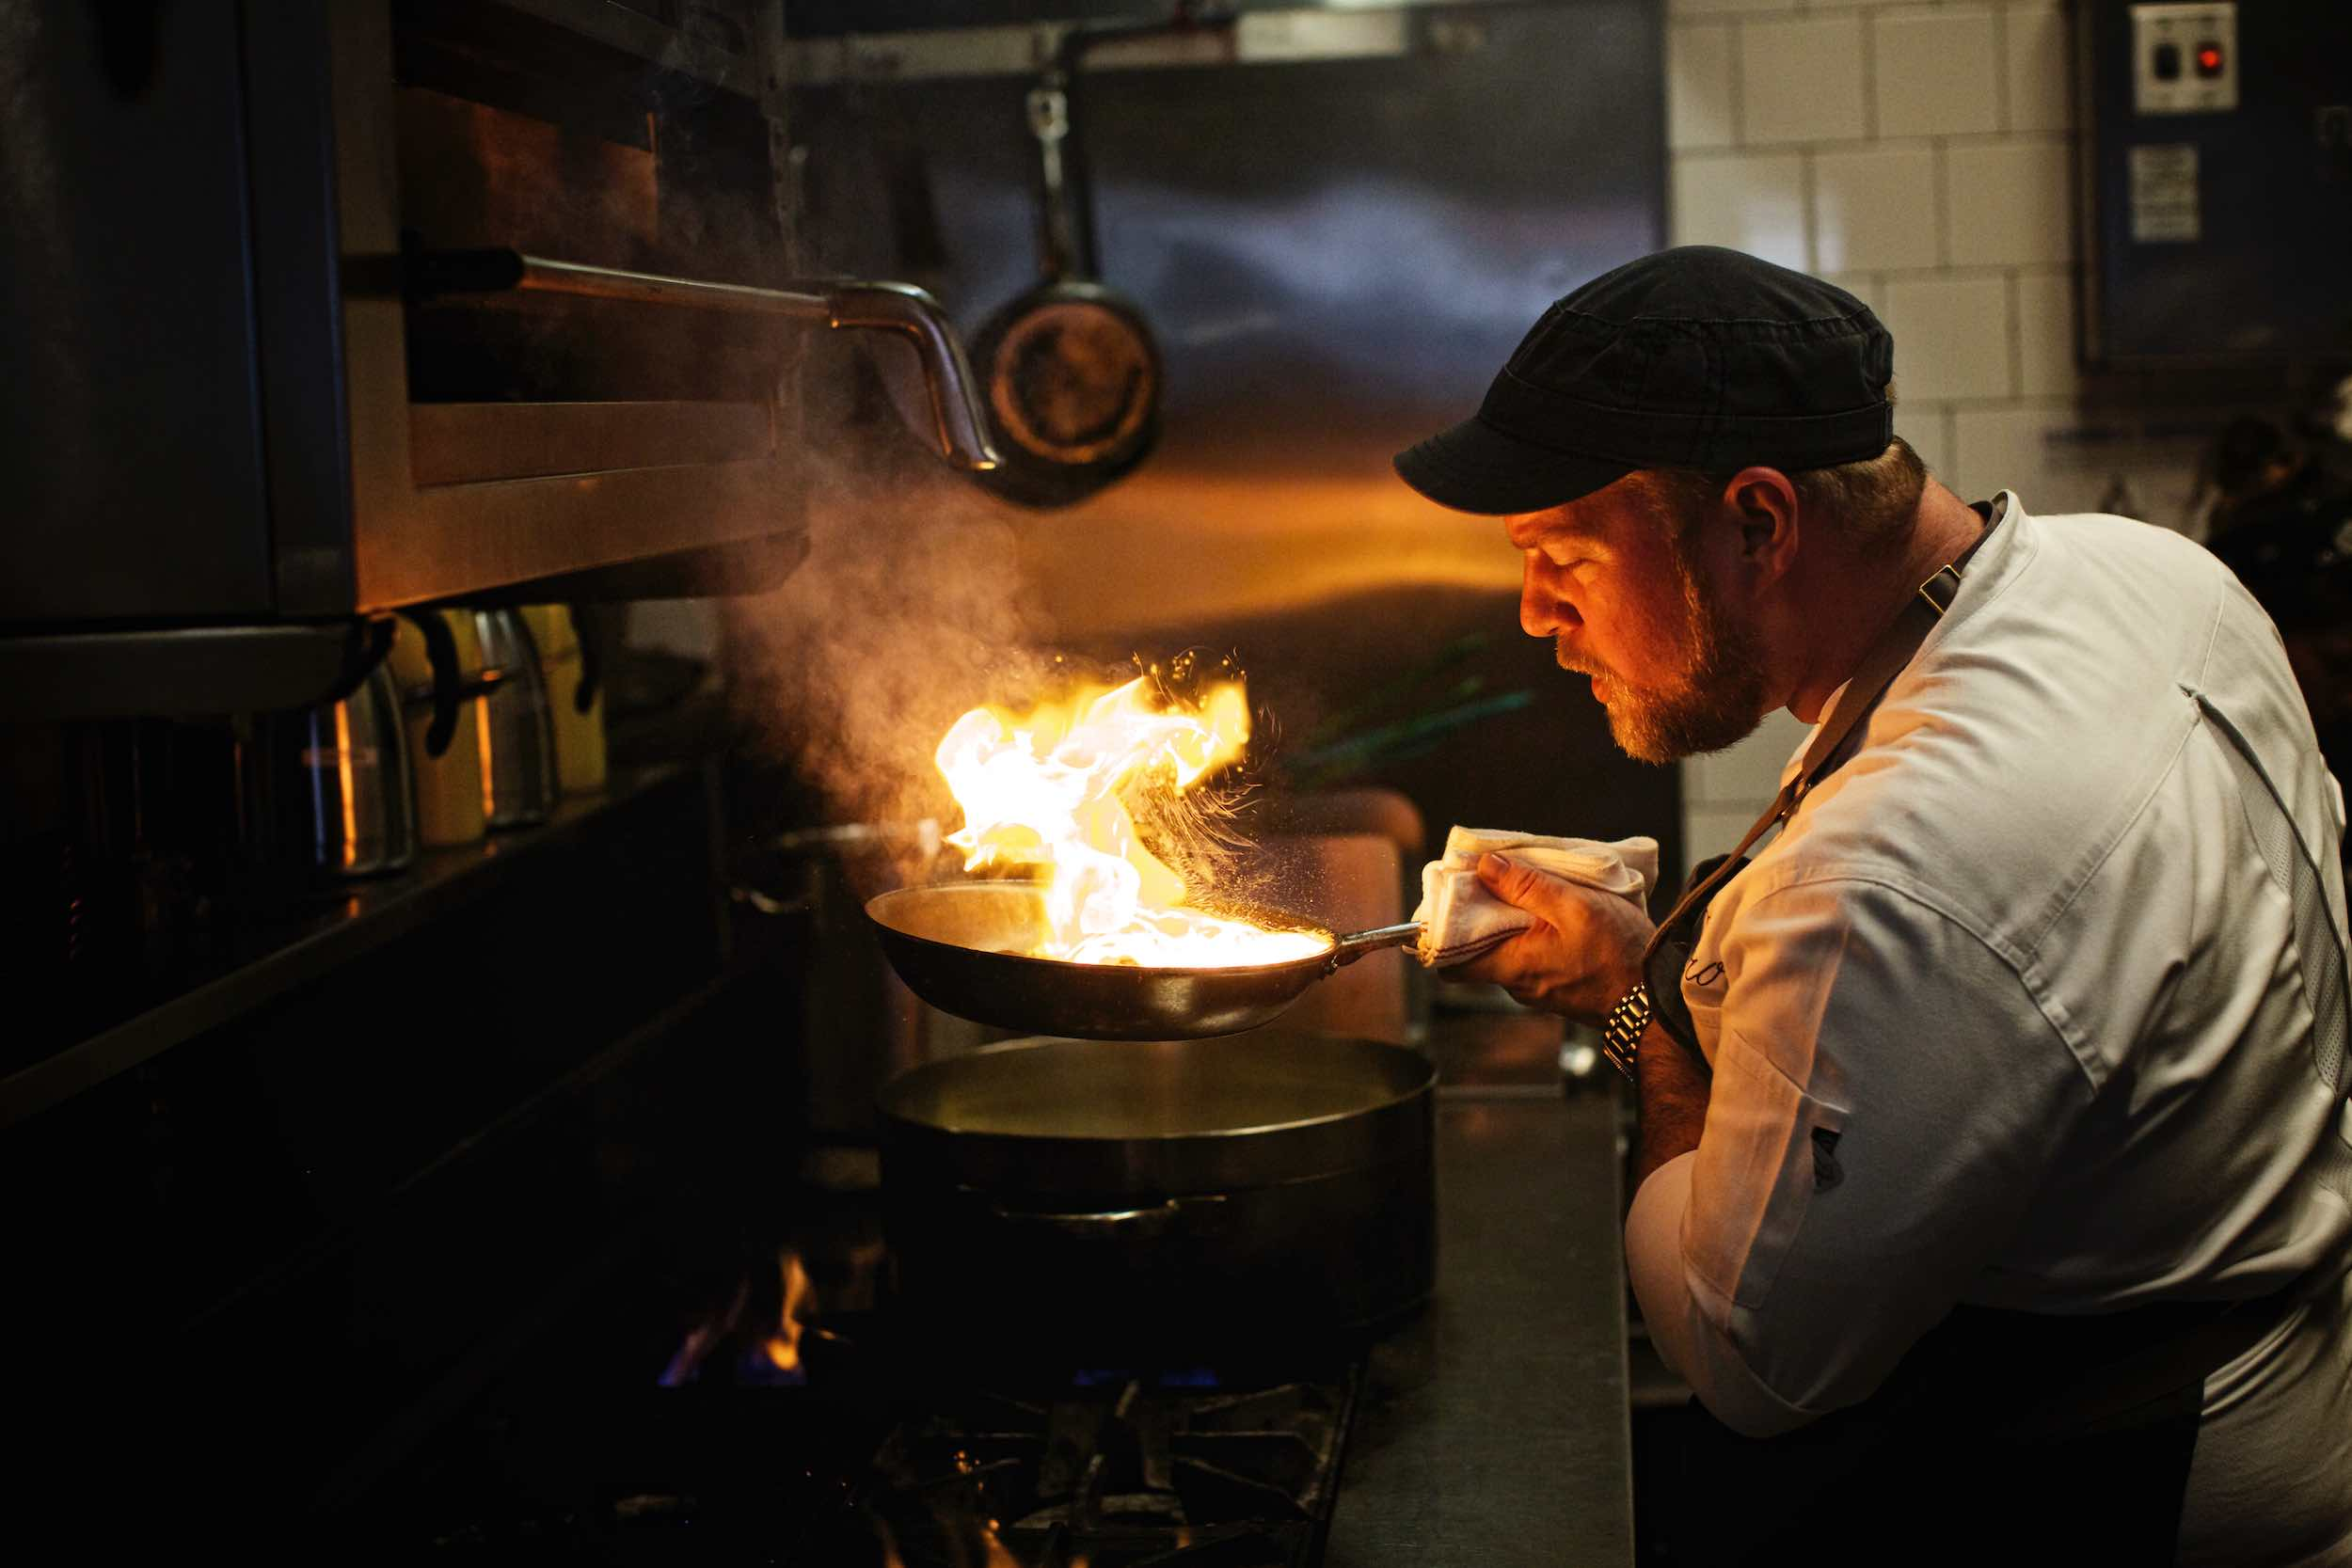 Jody Horton Photography - Chef sauteing with fire in the kitchen.